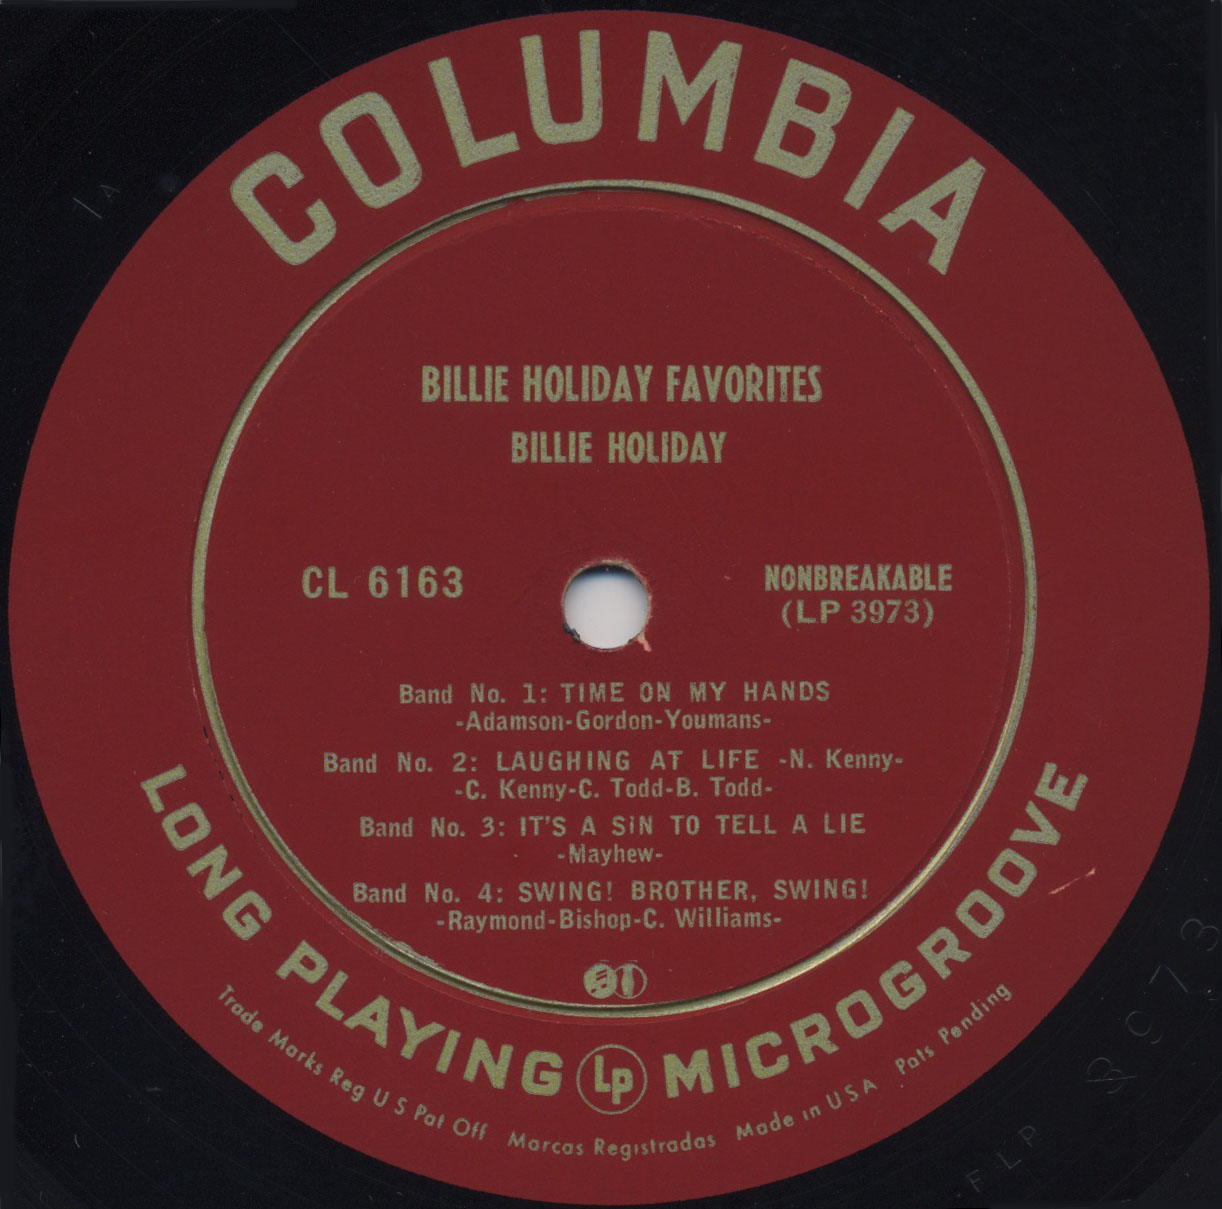 lp by record label billie holiday songs